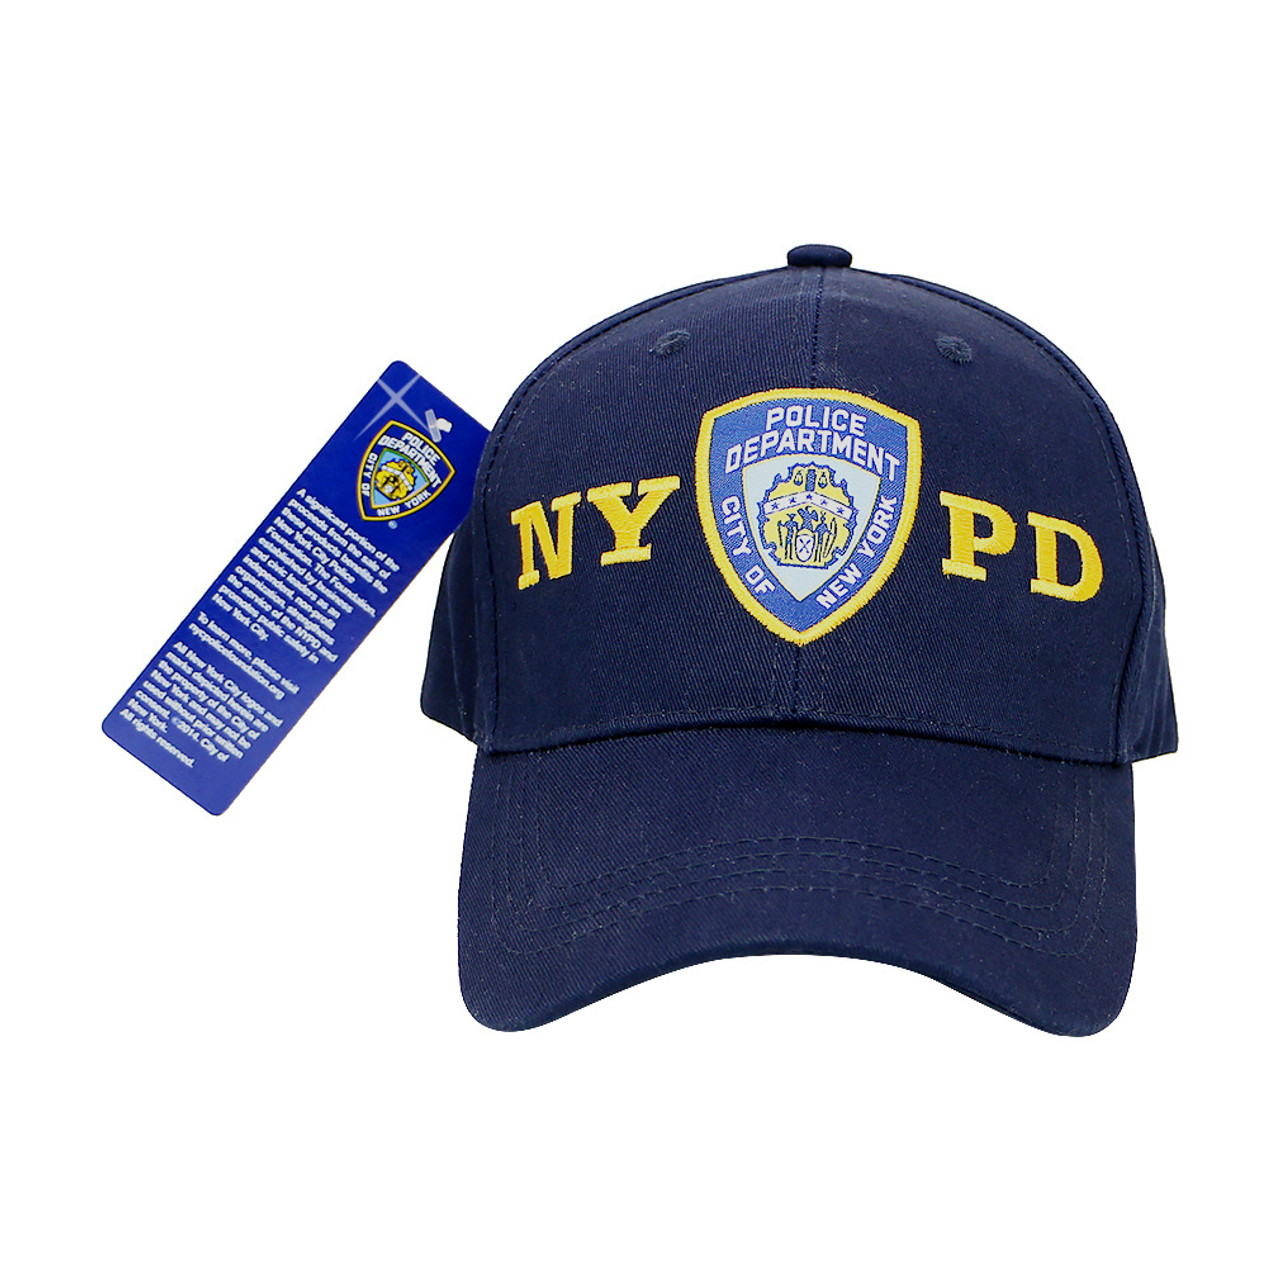 New York Police Department NYPD Cap b77137225e6